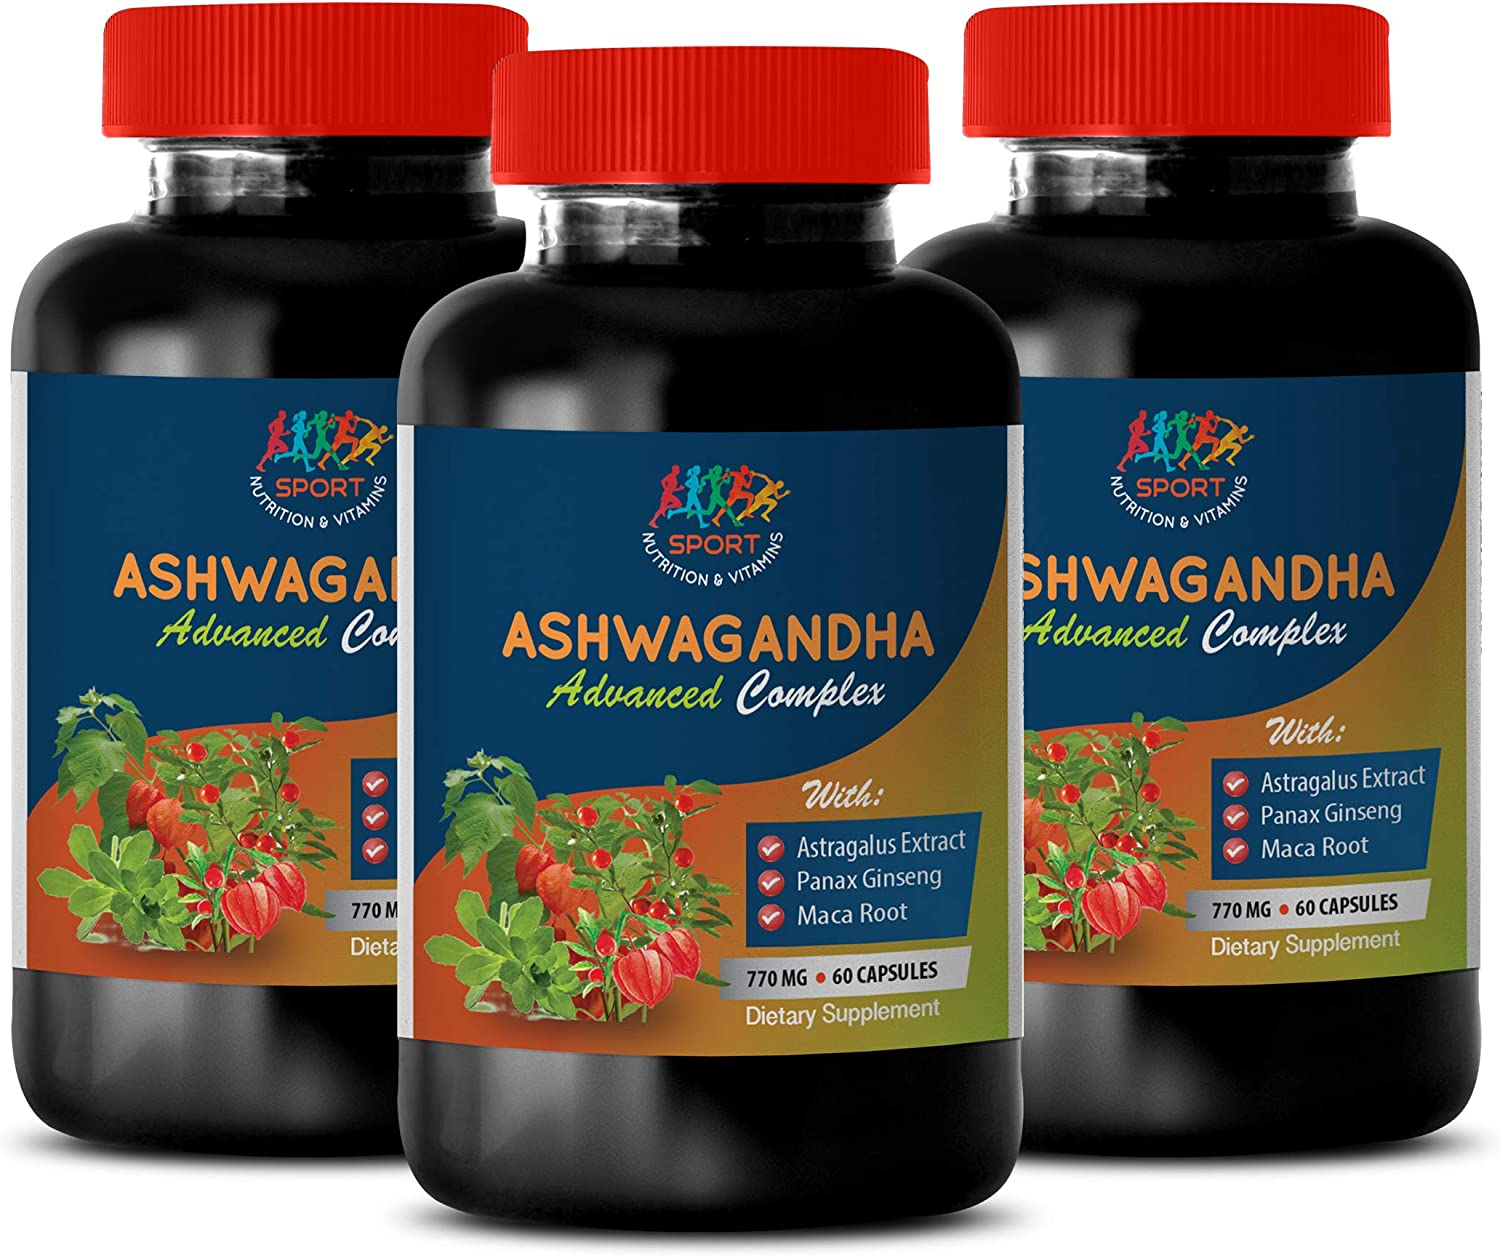 Depression Supplements Herbal - ASHWAGANDHA Advanced Complex 770 MG - Dietary Supplement - Lower Blood Sugar Levels - 3 Bottles 180 Capsules